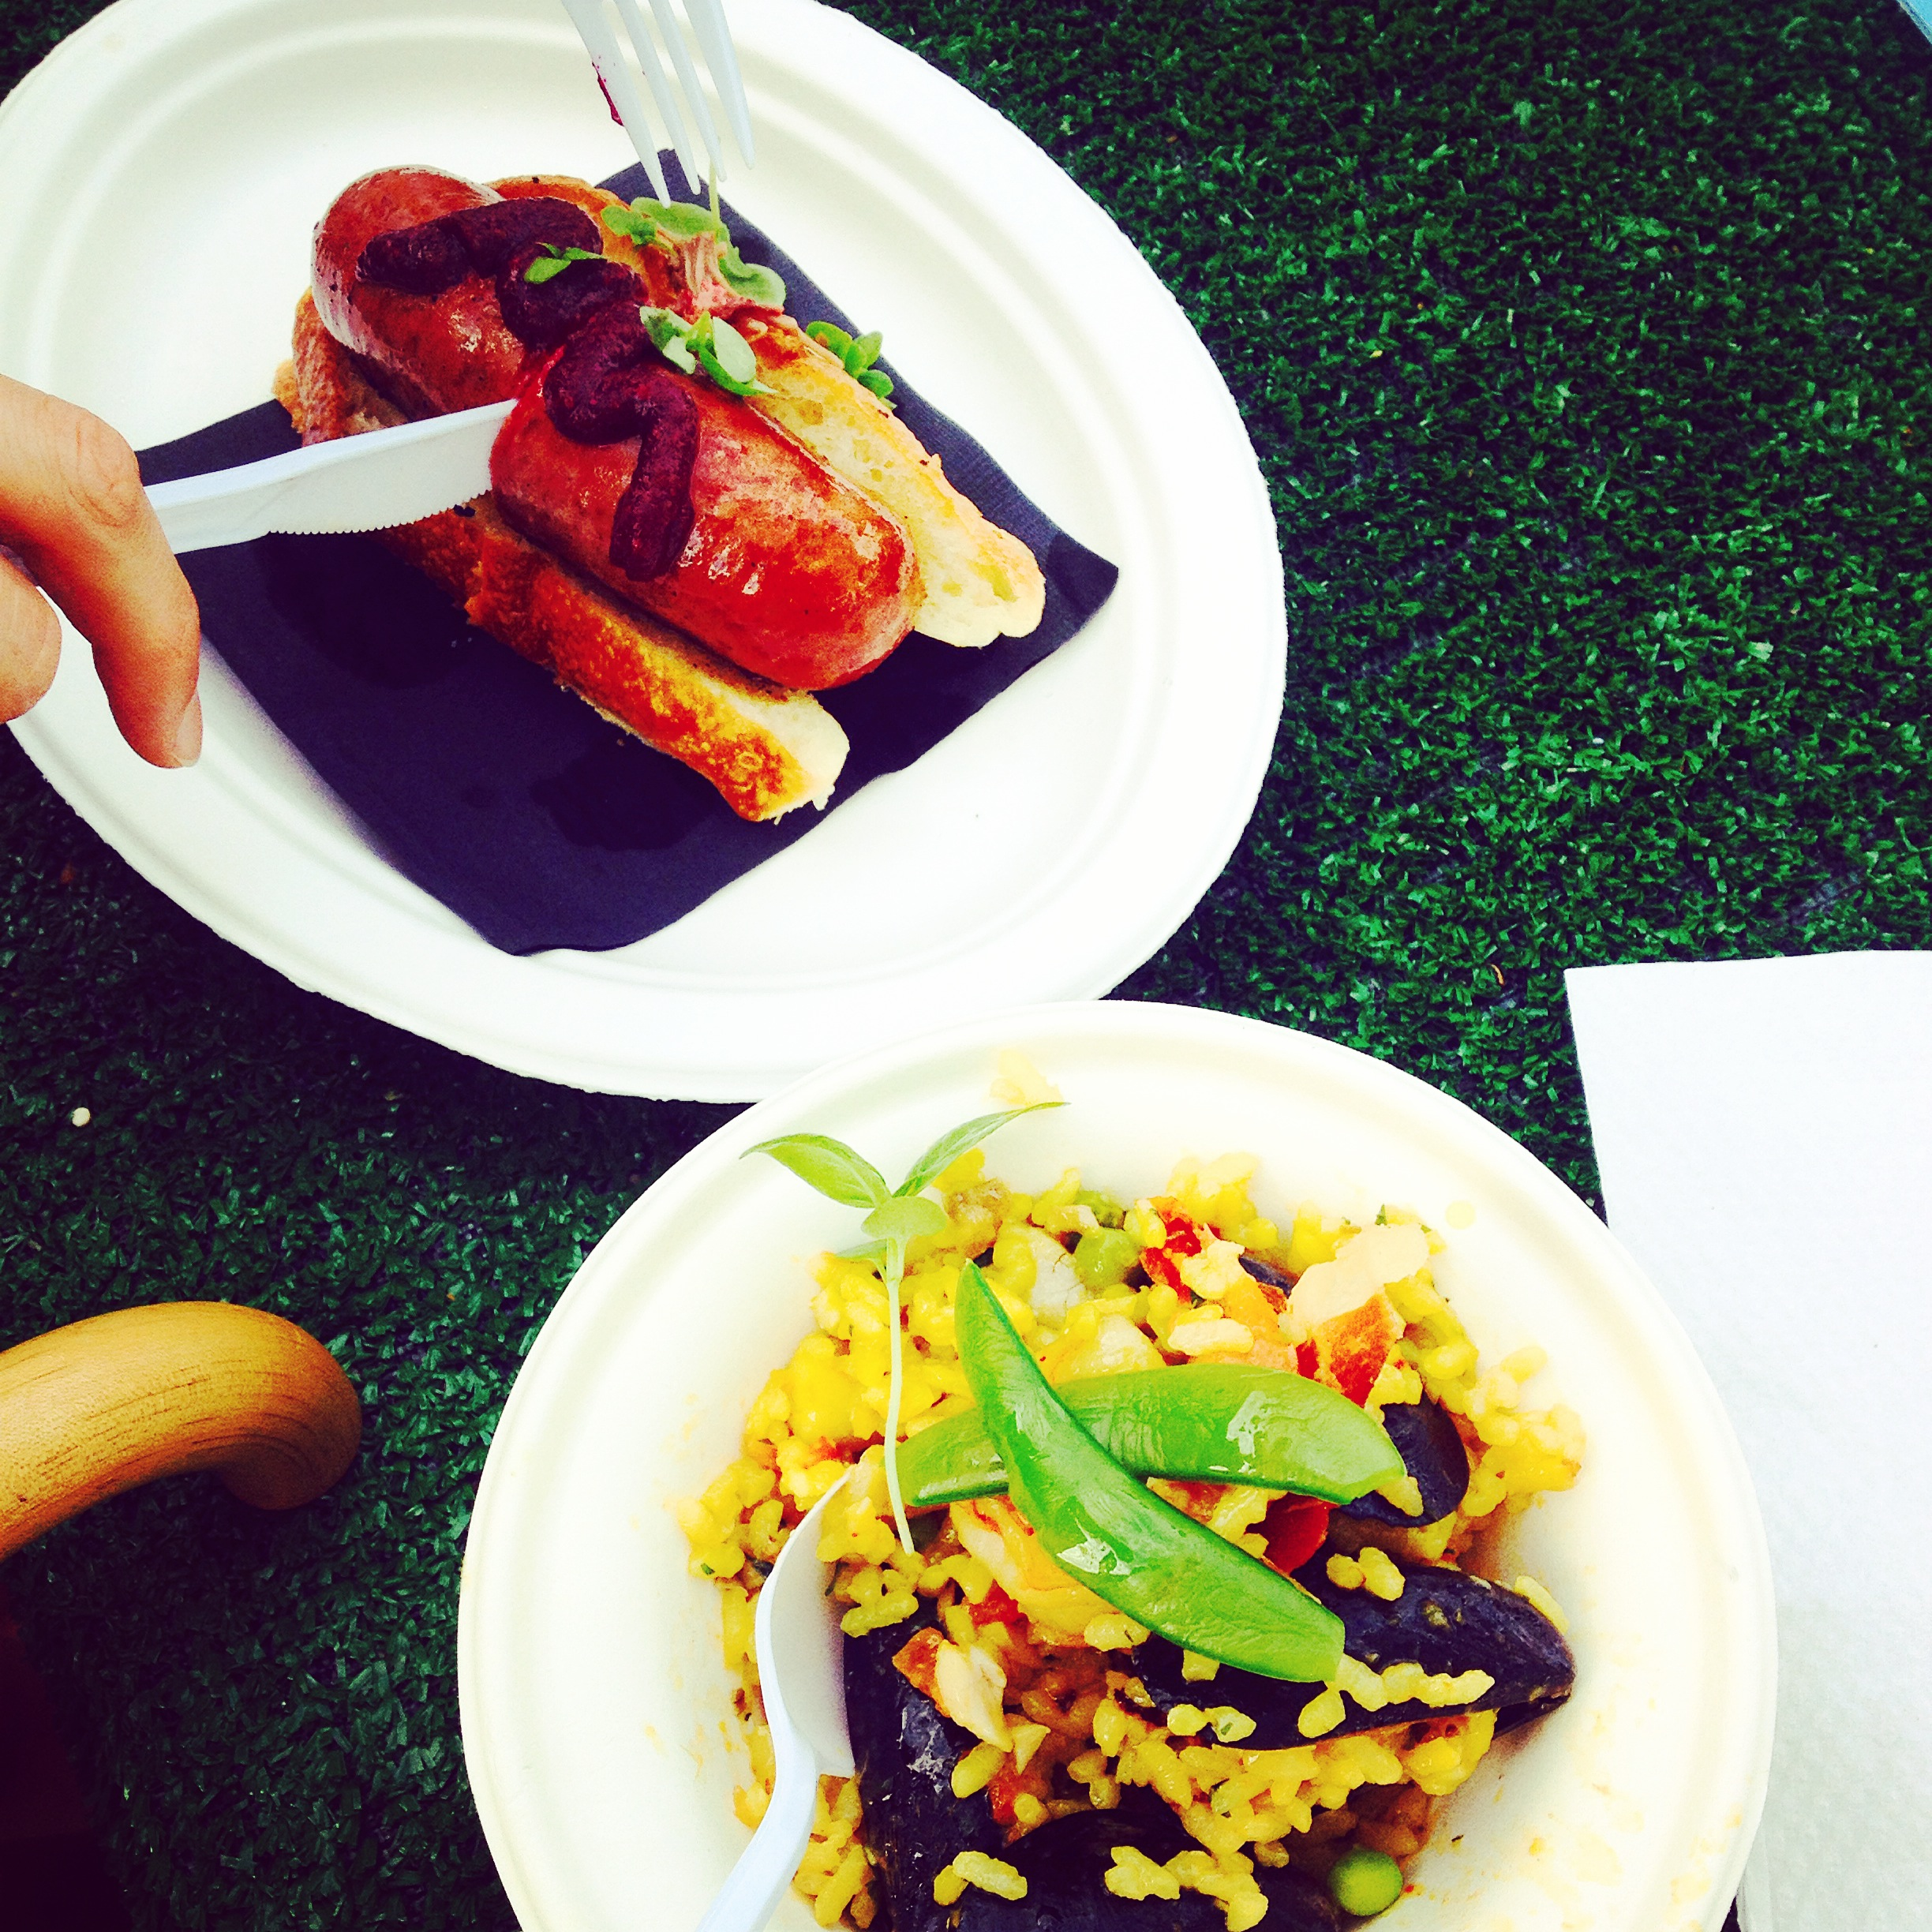 Weslodge's Wagyu Hot Dog & Patria's Seafood Paella